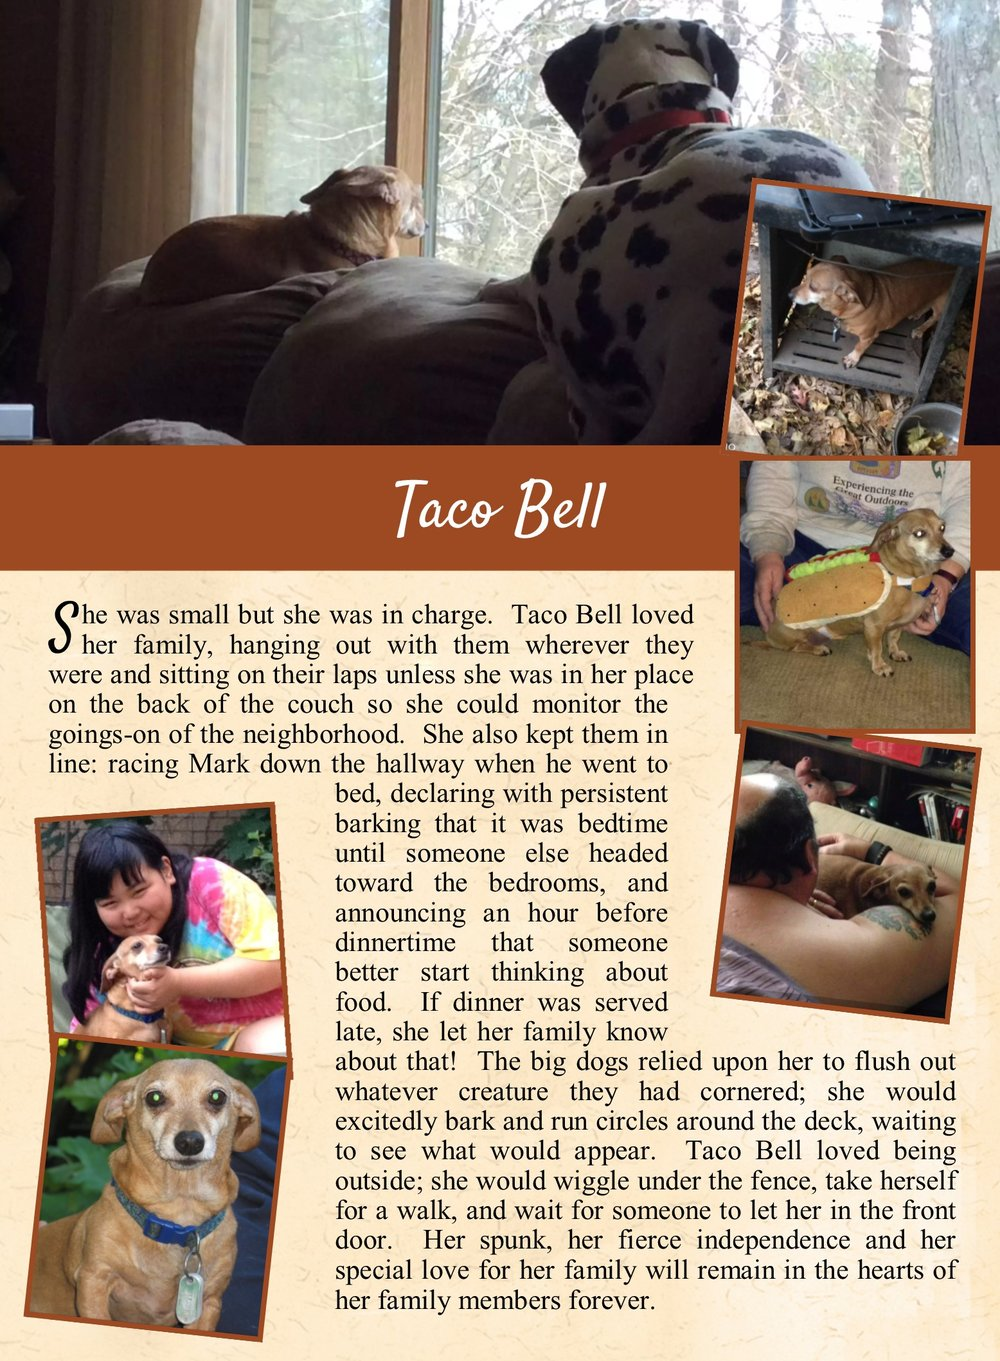 Taco Bell's Life Tail